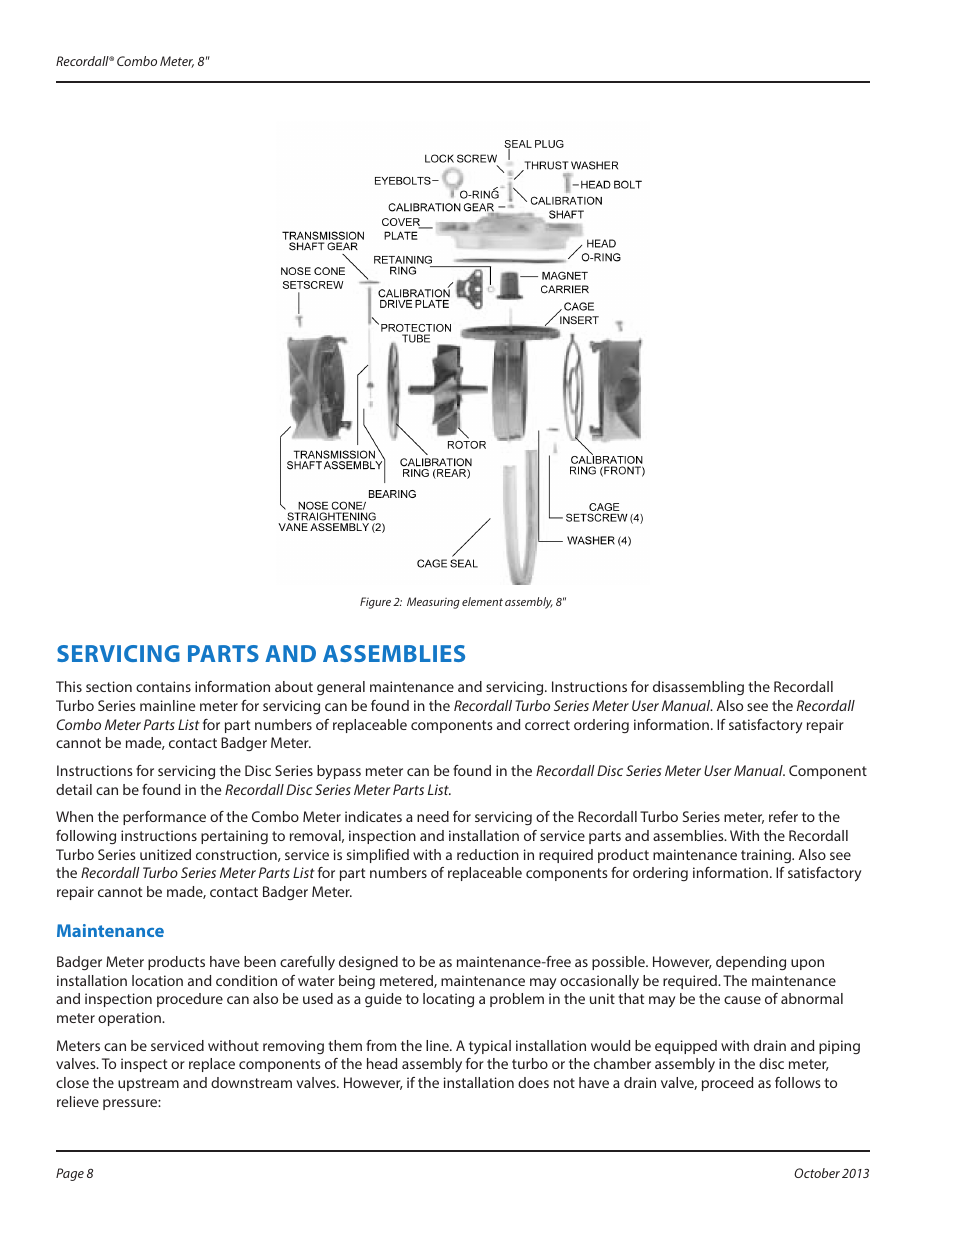 Servicing parts and assemblies, Maintenance | Badger Meter Recordall  Compound Series Meters User Manual | Page 8 / 16